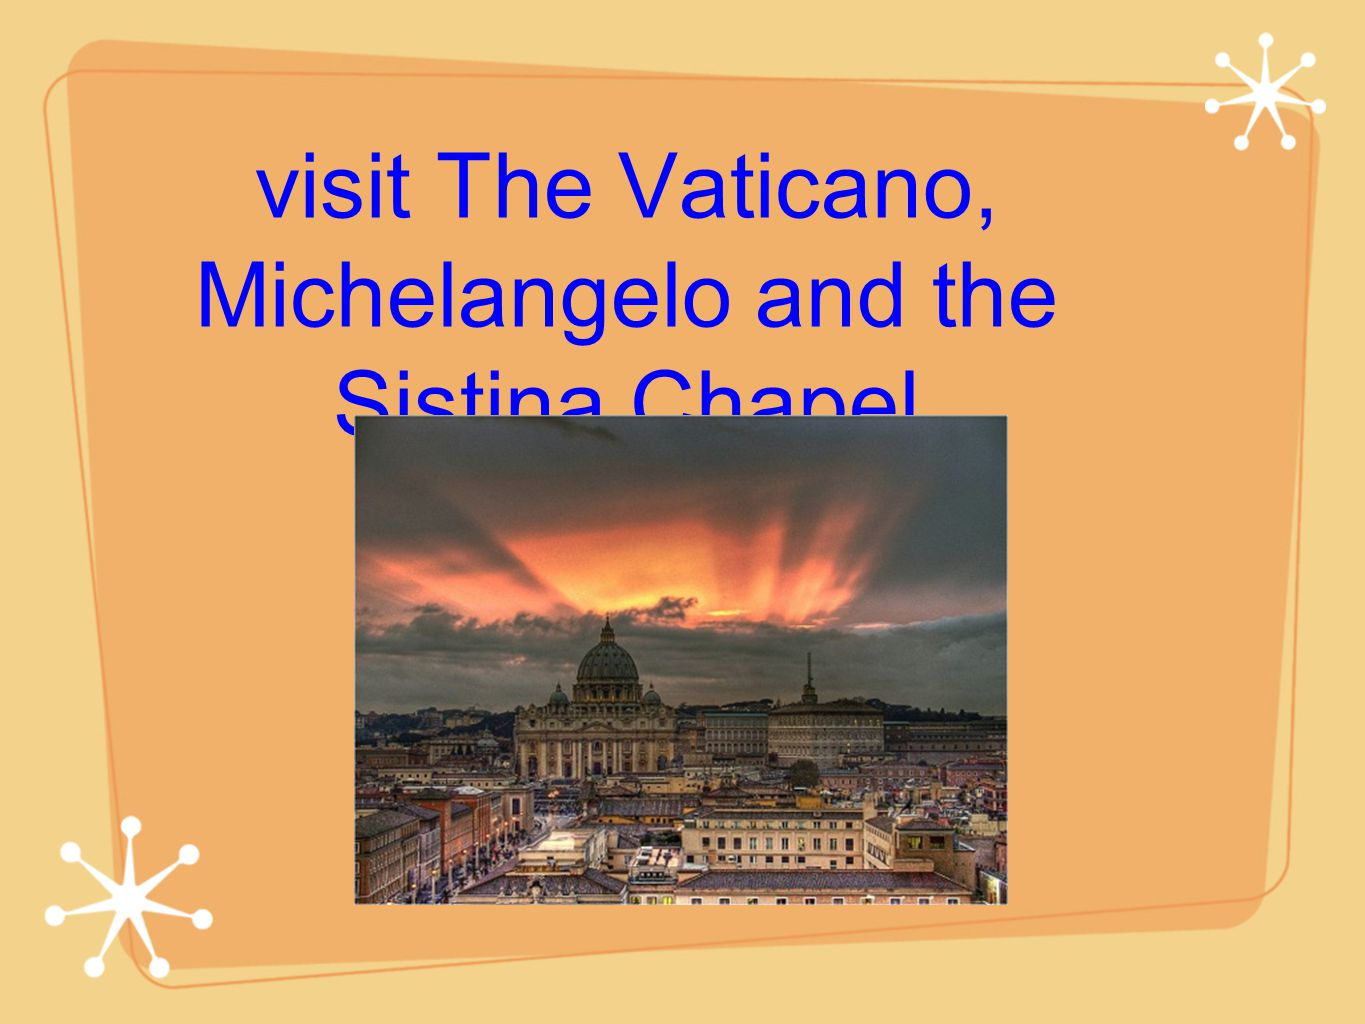 visit The Vaticano, Michelangelo and the Sistina Chapel